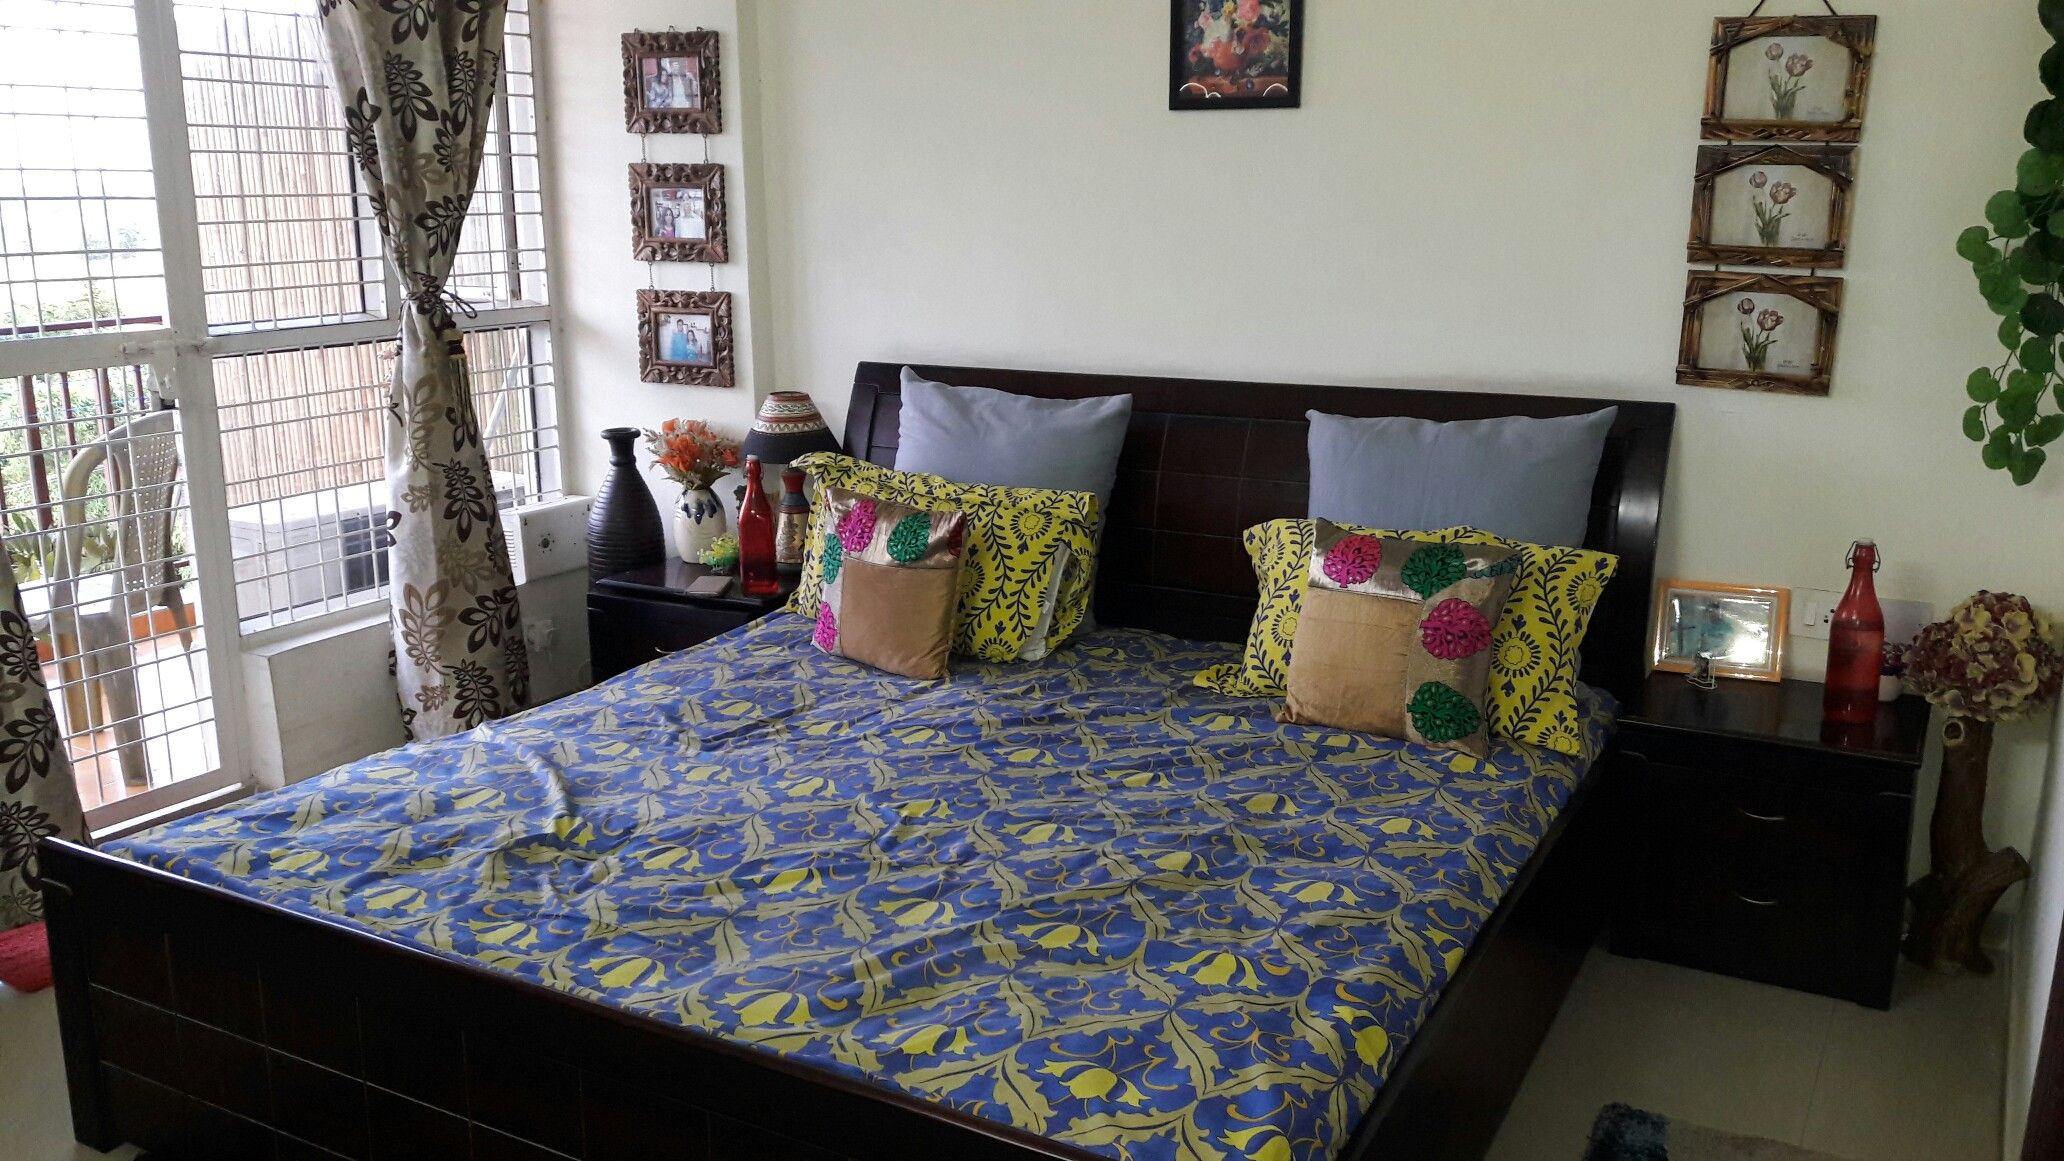 Pin By Talli Inty On Diningroom Indian Bedroom Decor Home Decor